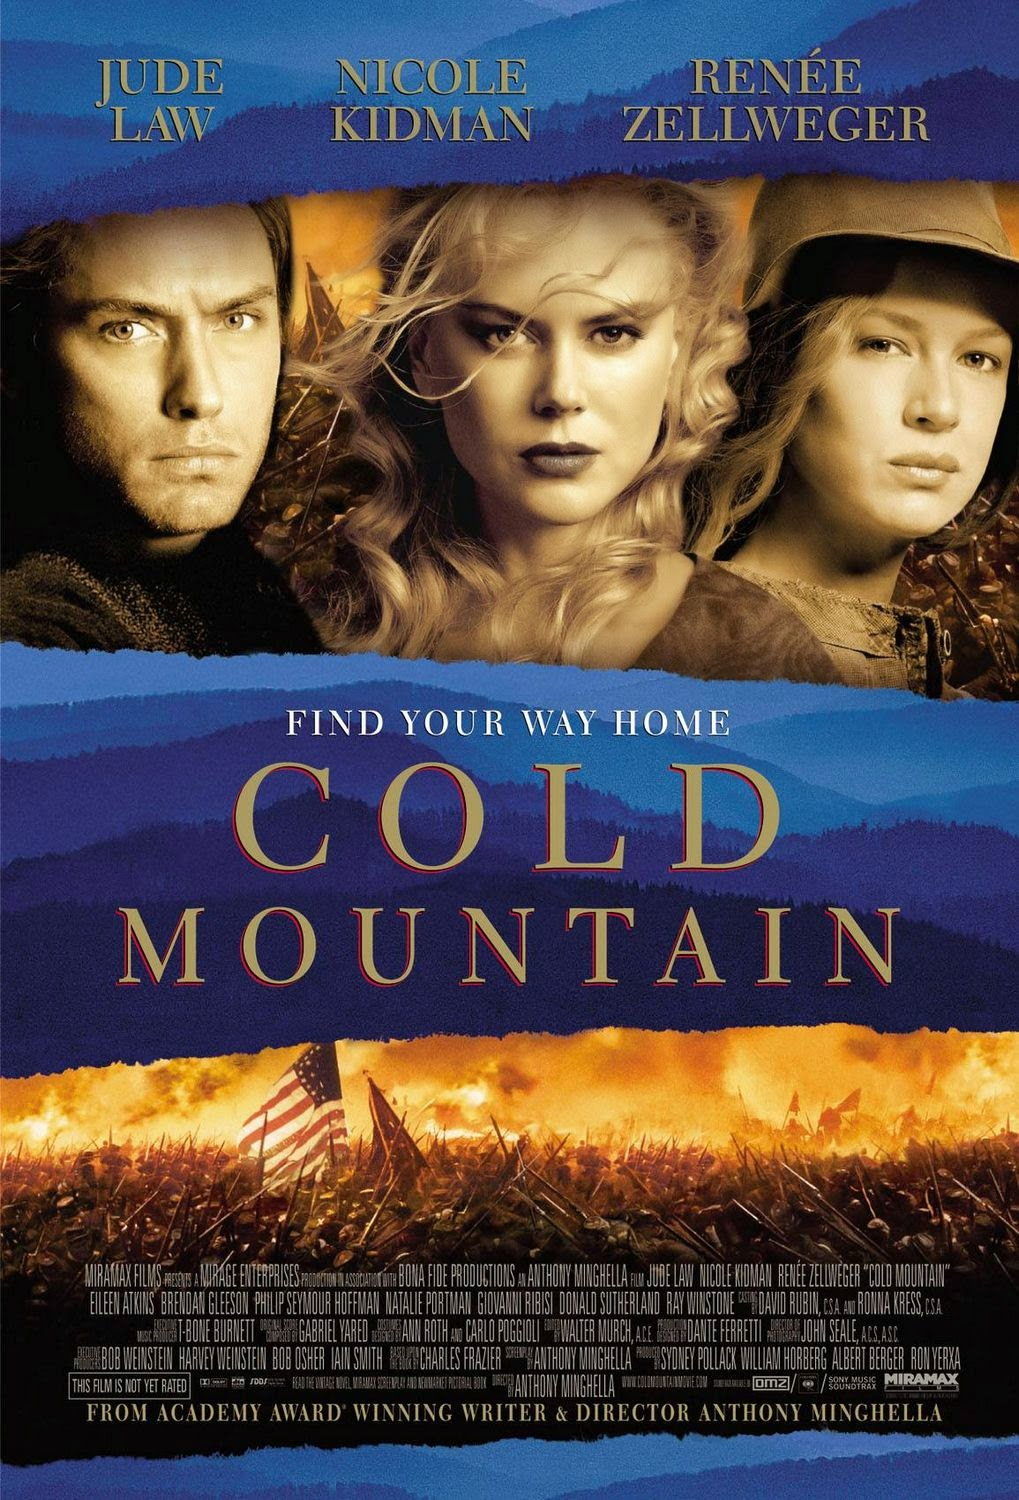 Cold Mountain — 4 out of 5 stars